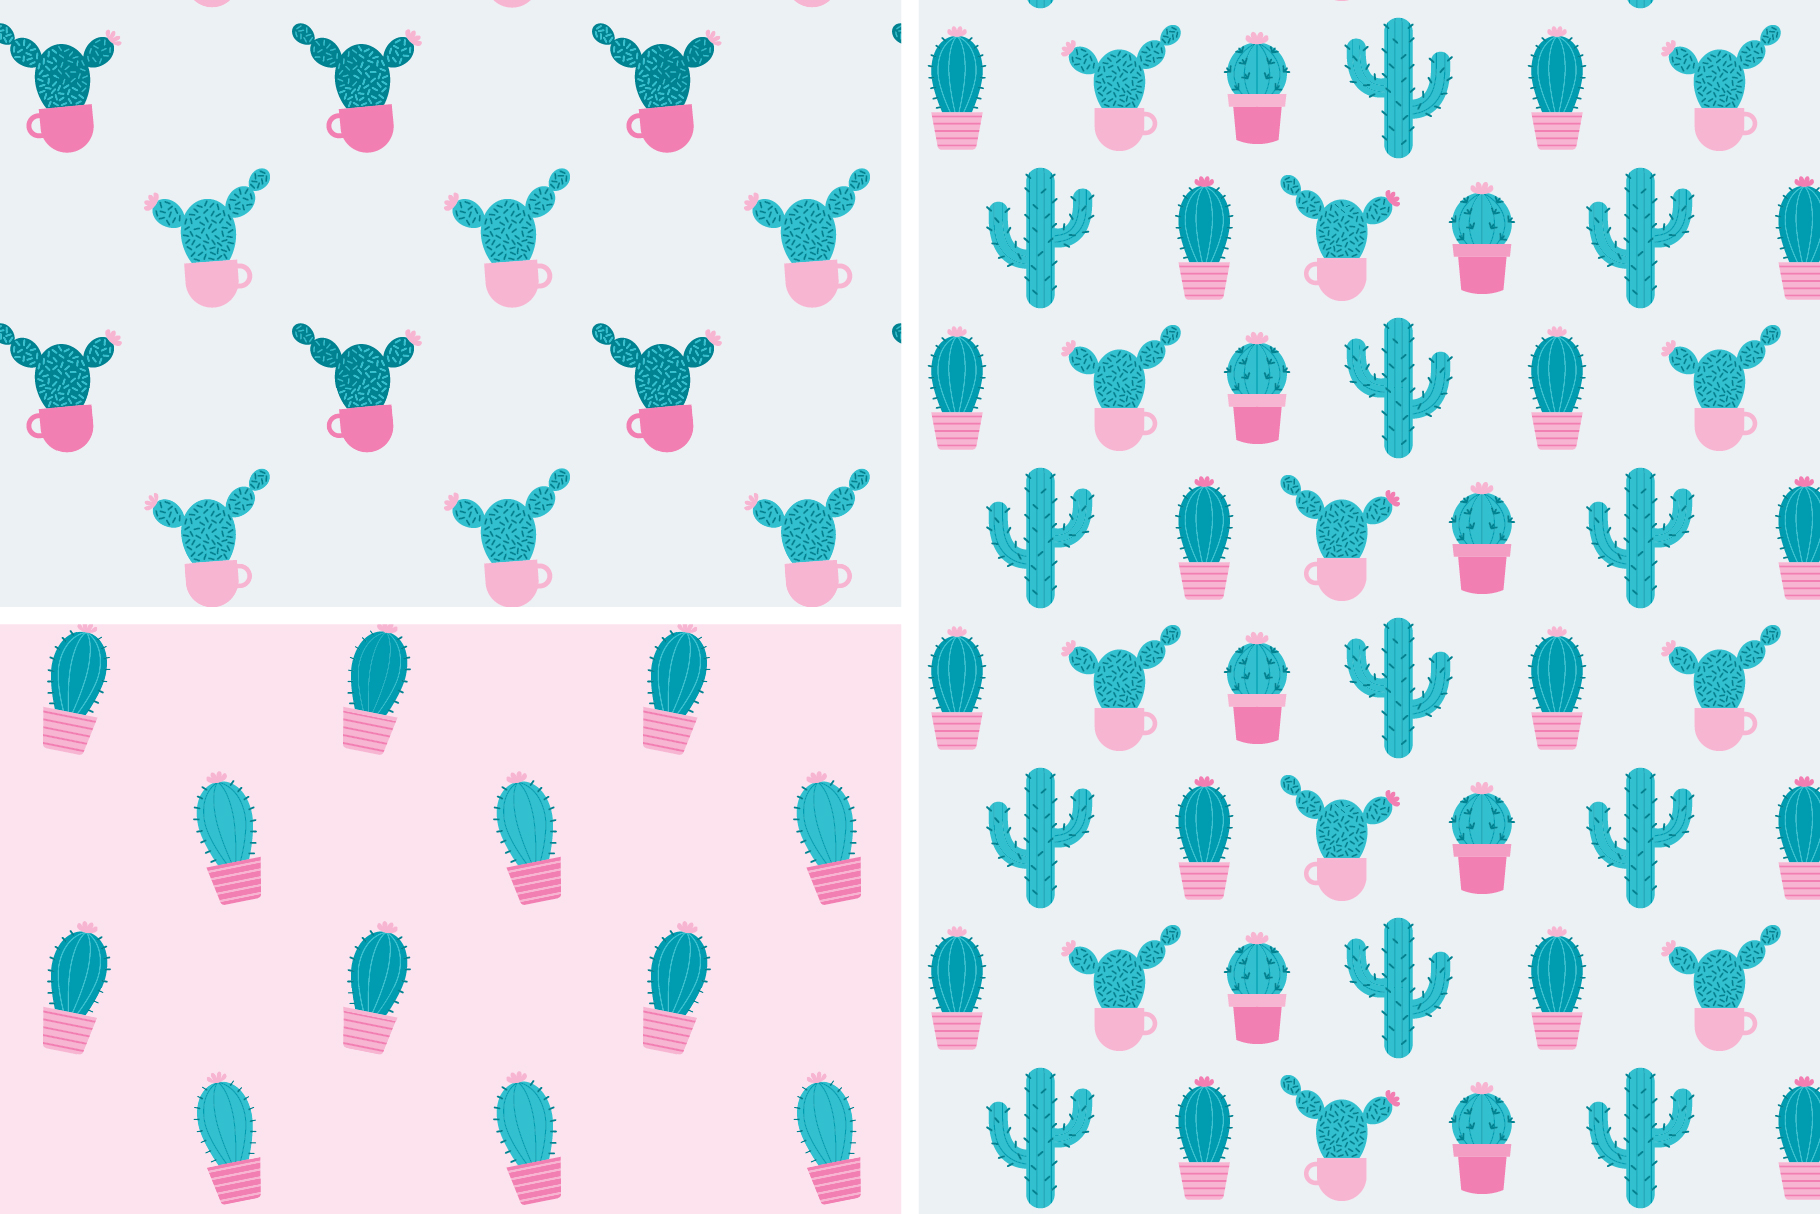 Cactus Seamless Patterns Collection example image 7